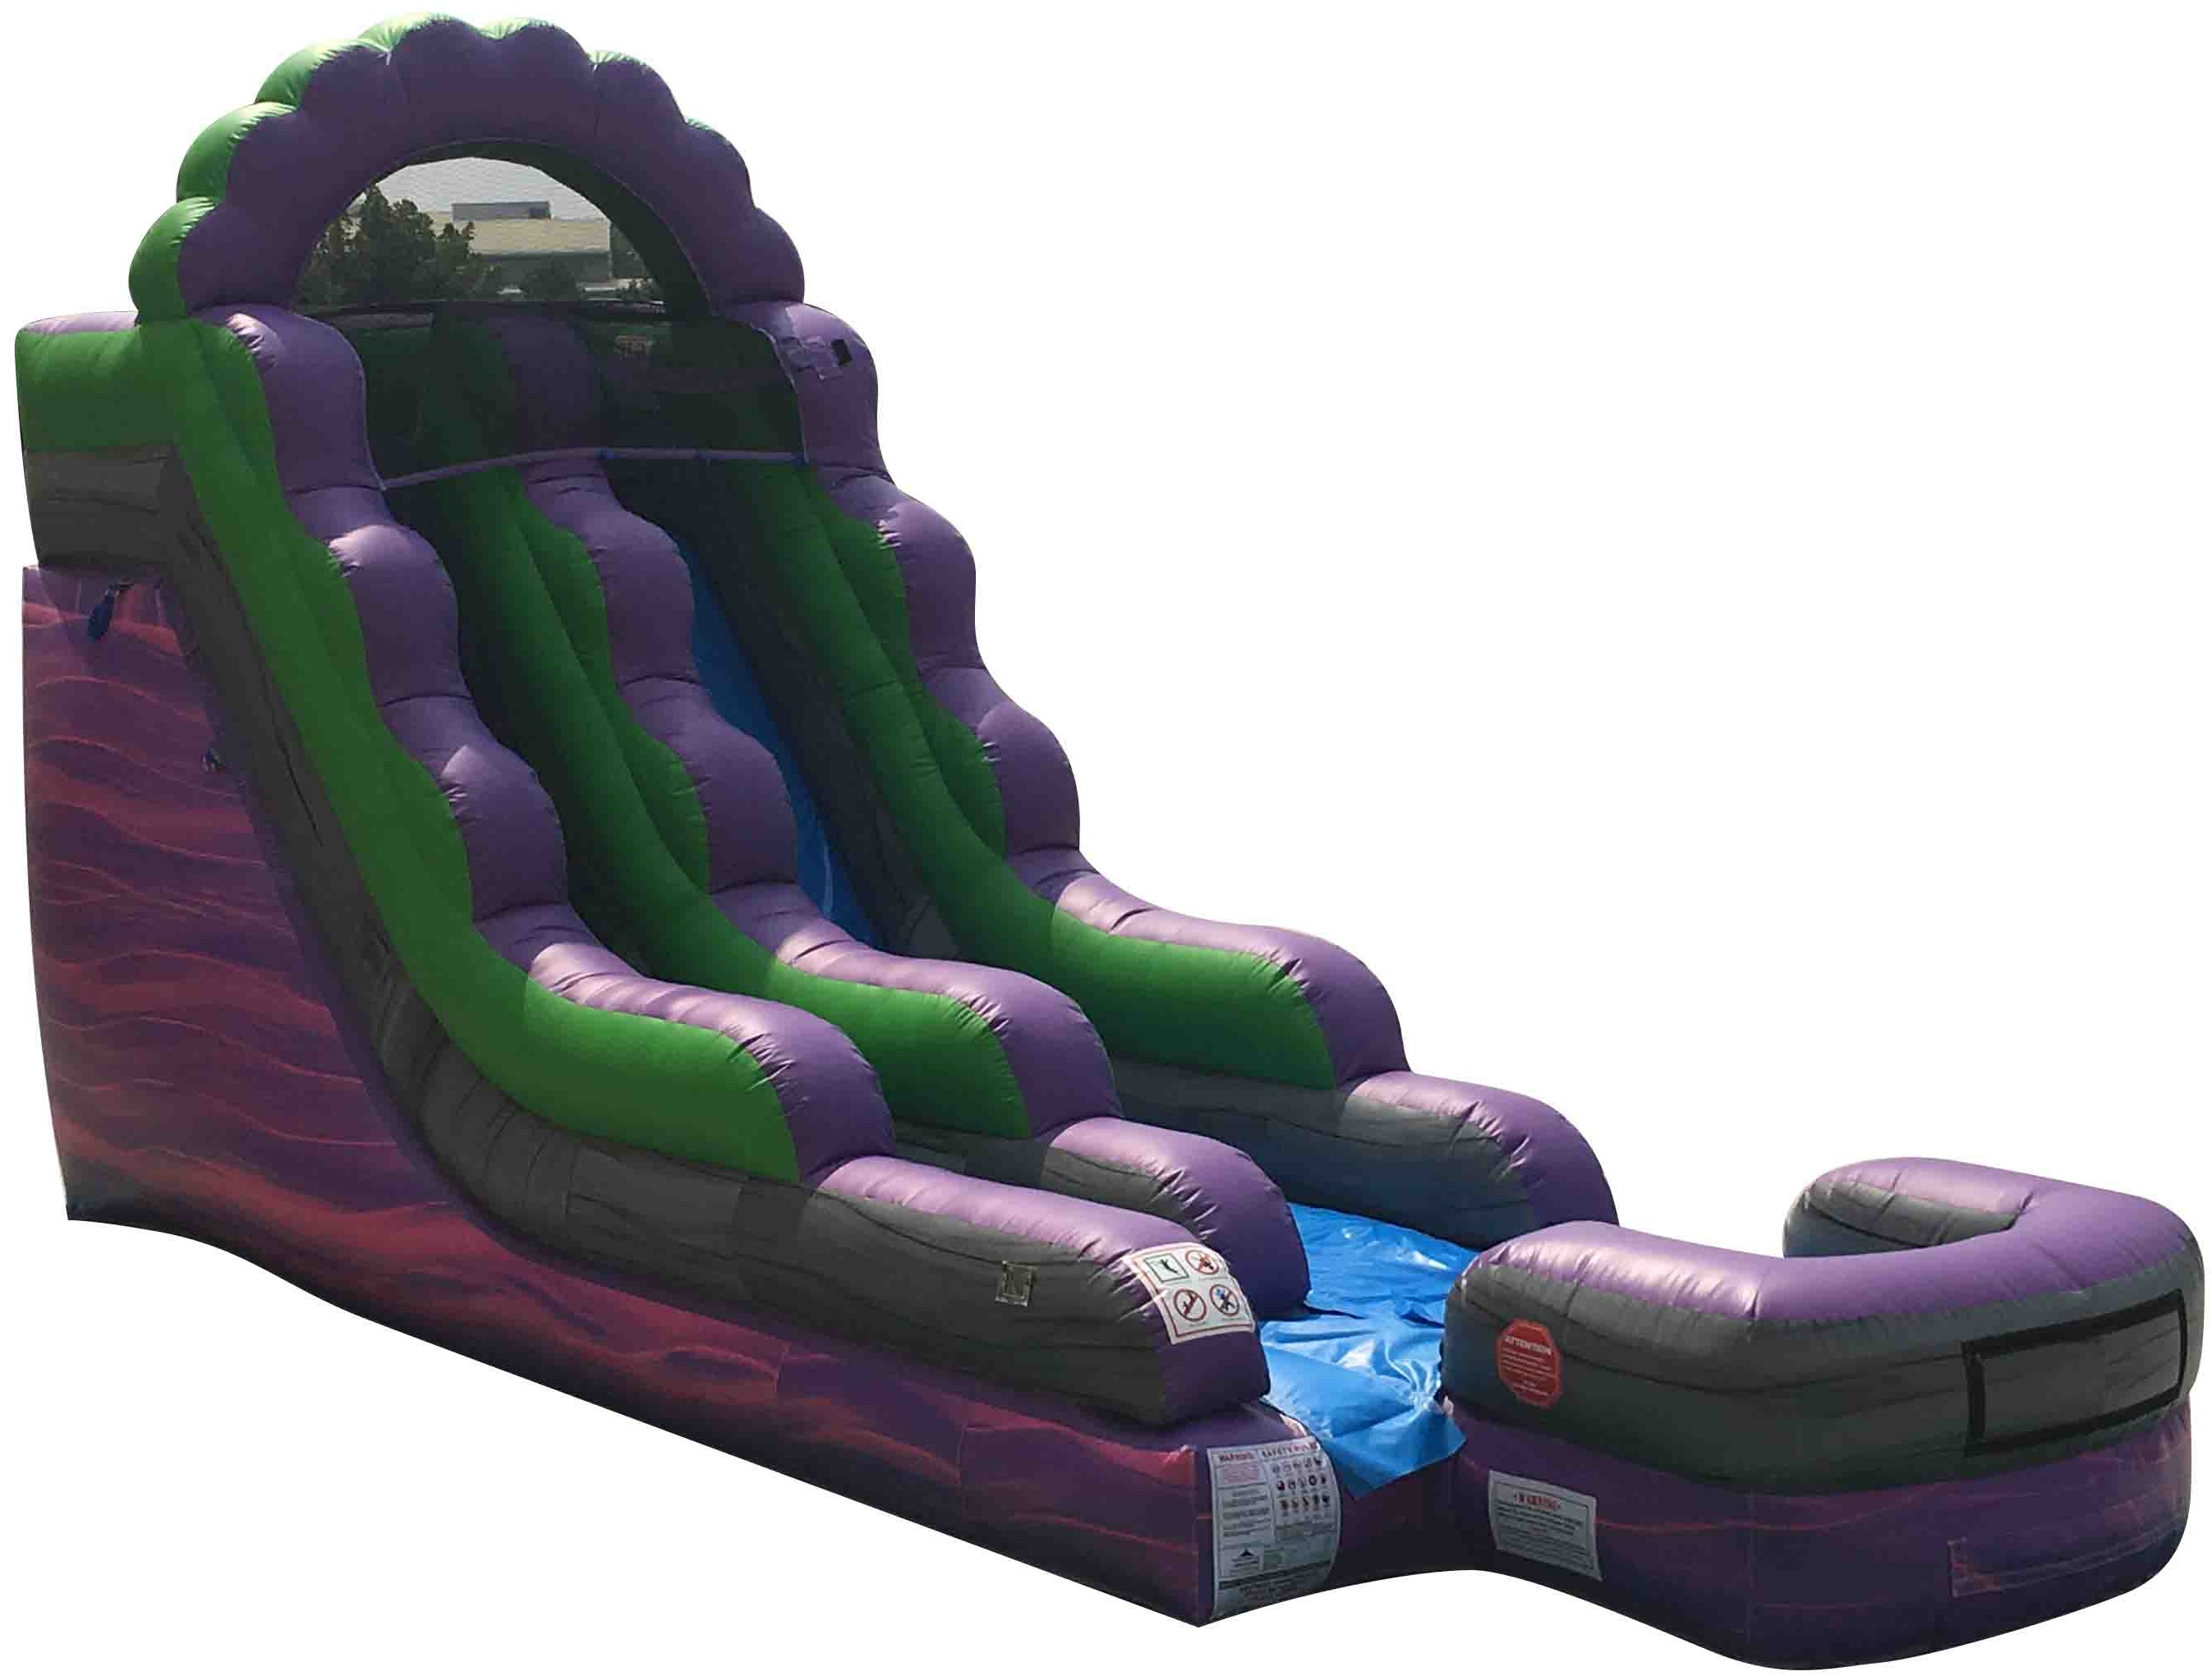 Pogo 15' Purple Marble Commercial Kids Jumper Inflatable Waterslide with Blower by Pogo Bounce House